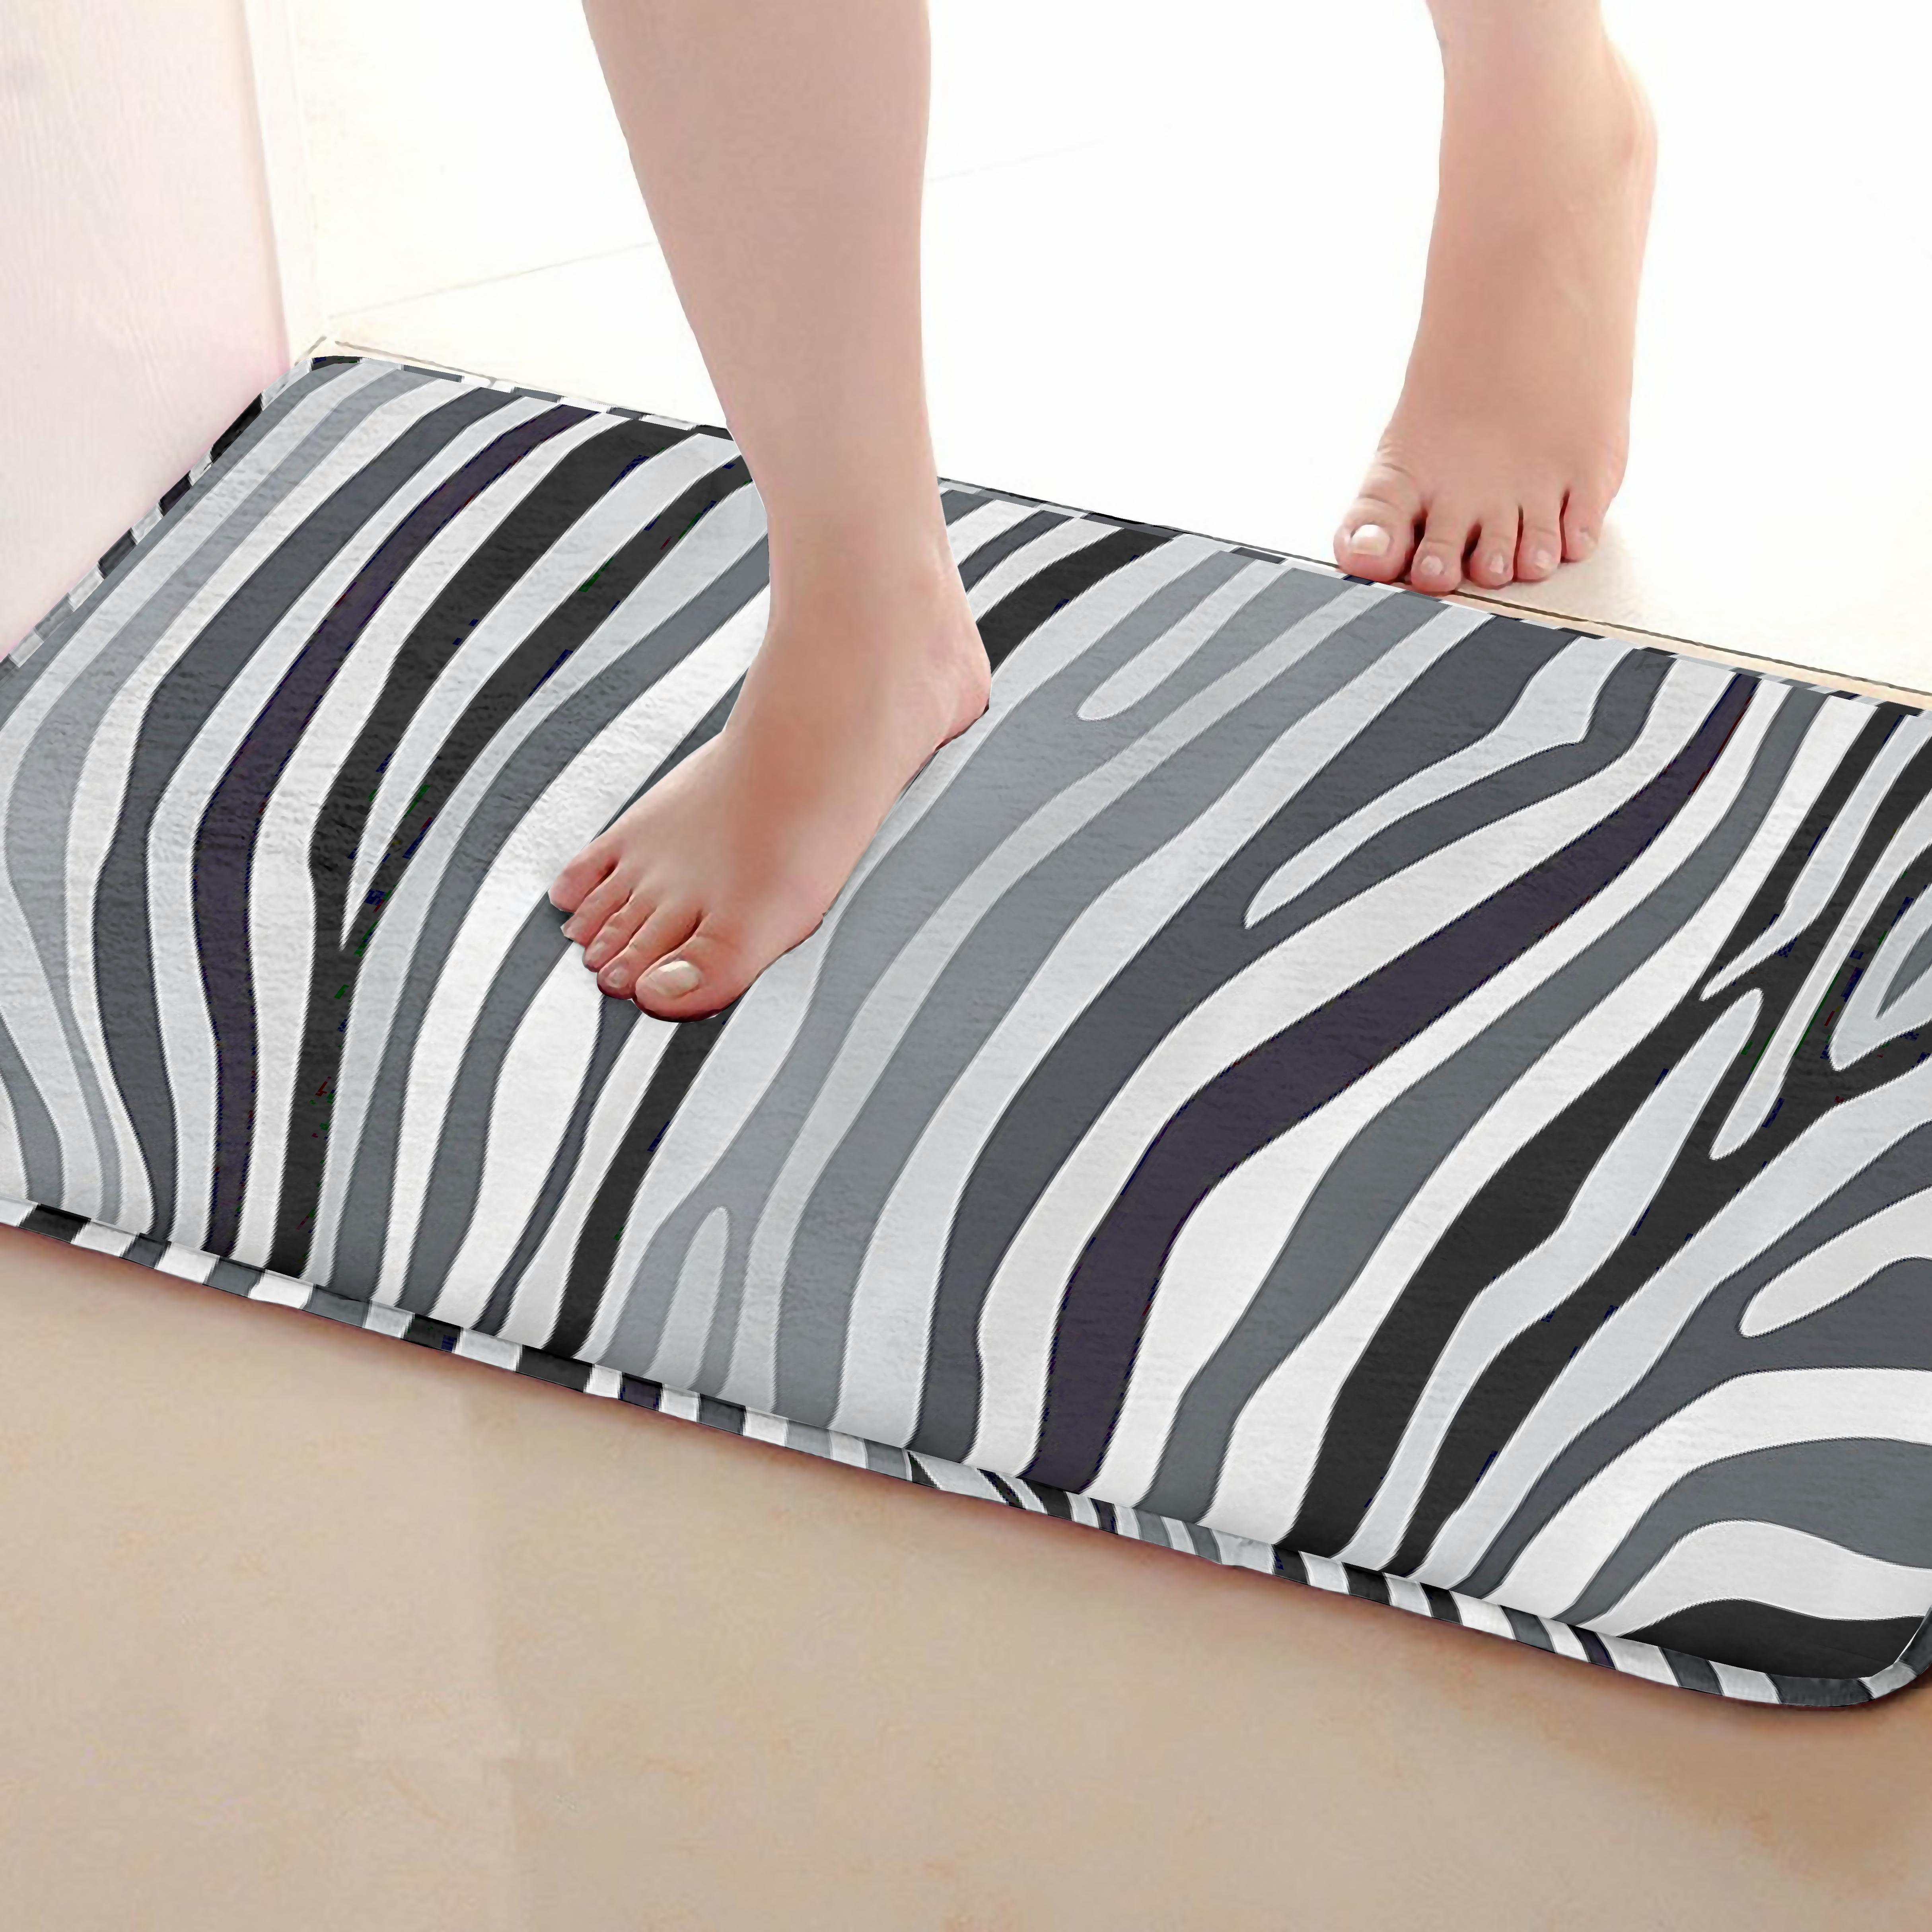 Zebra stripes Style Bathroom Mat,Funny Anti skid Bath Mat,Shower Curtains Accessories,Matching Your Shower Curtain